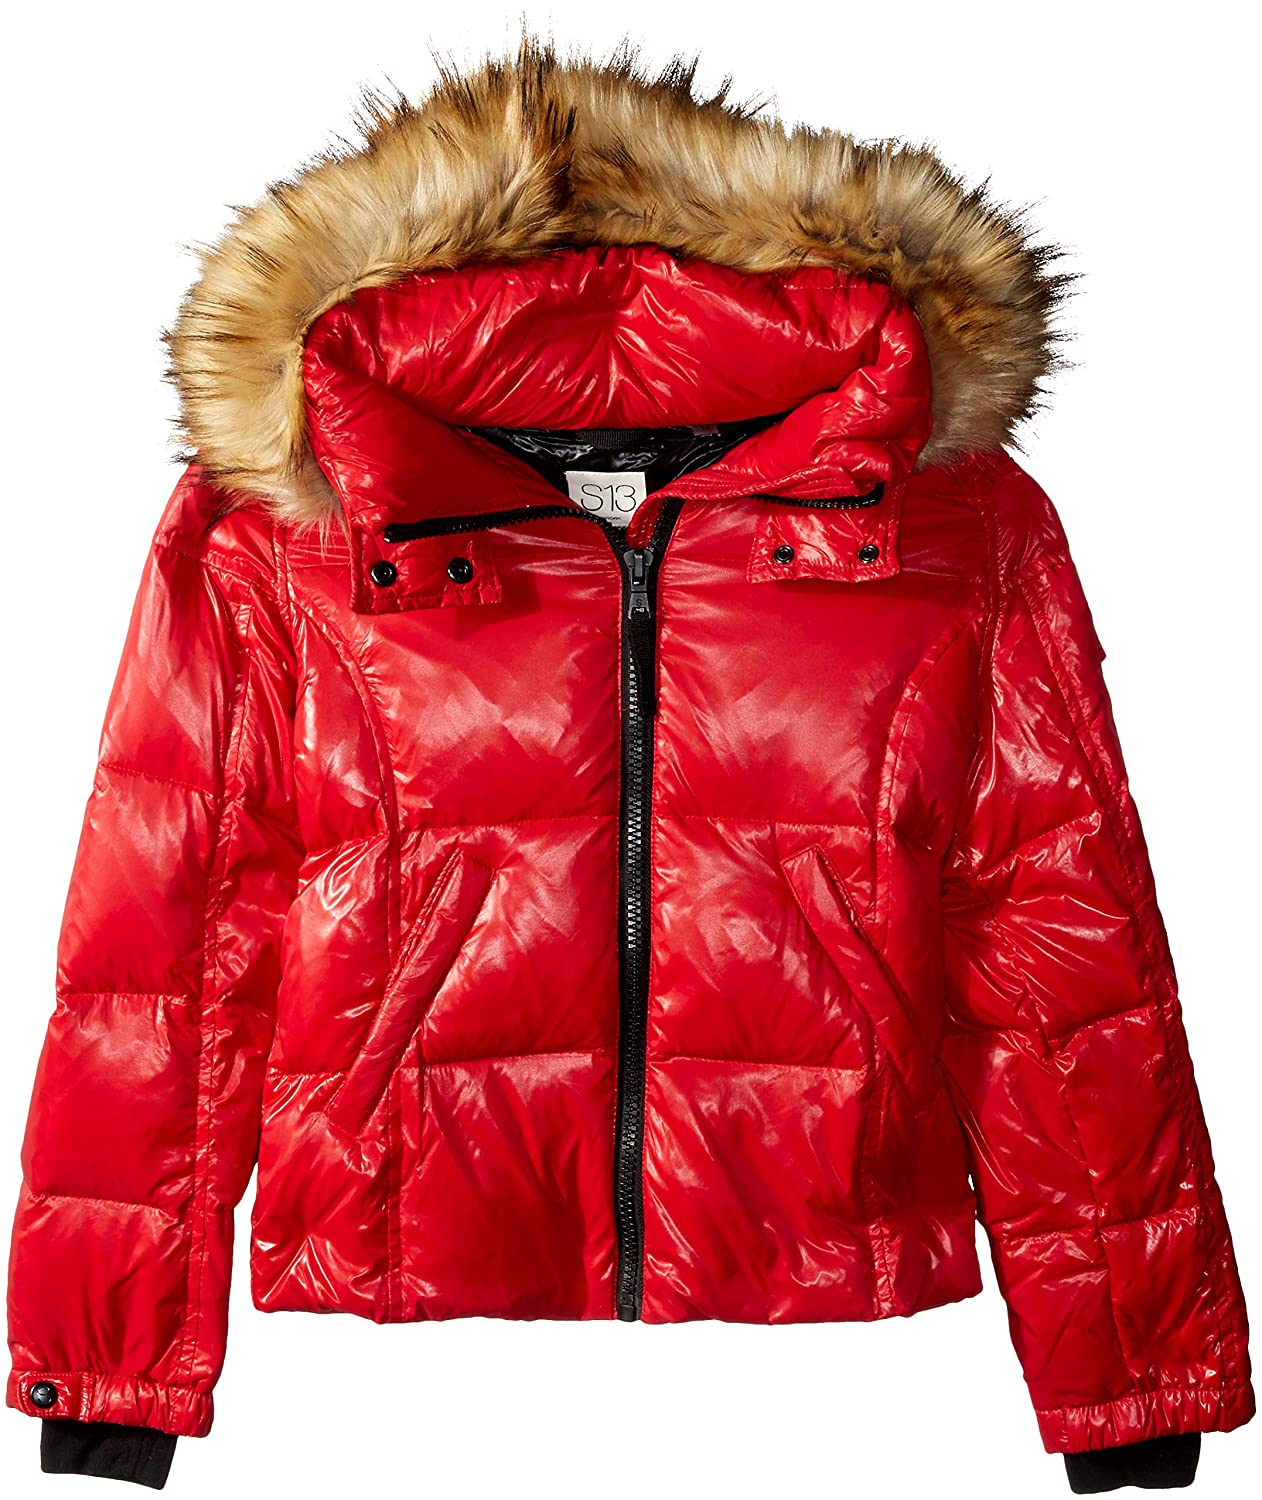 S13 Girls' Mogul Gloss Down Puffer with Faux Fur Hood